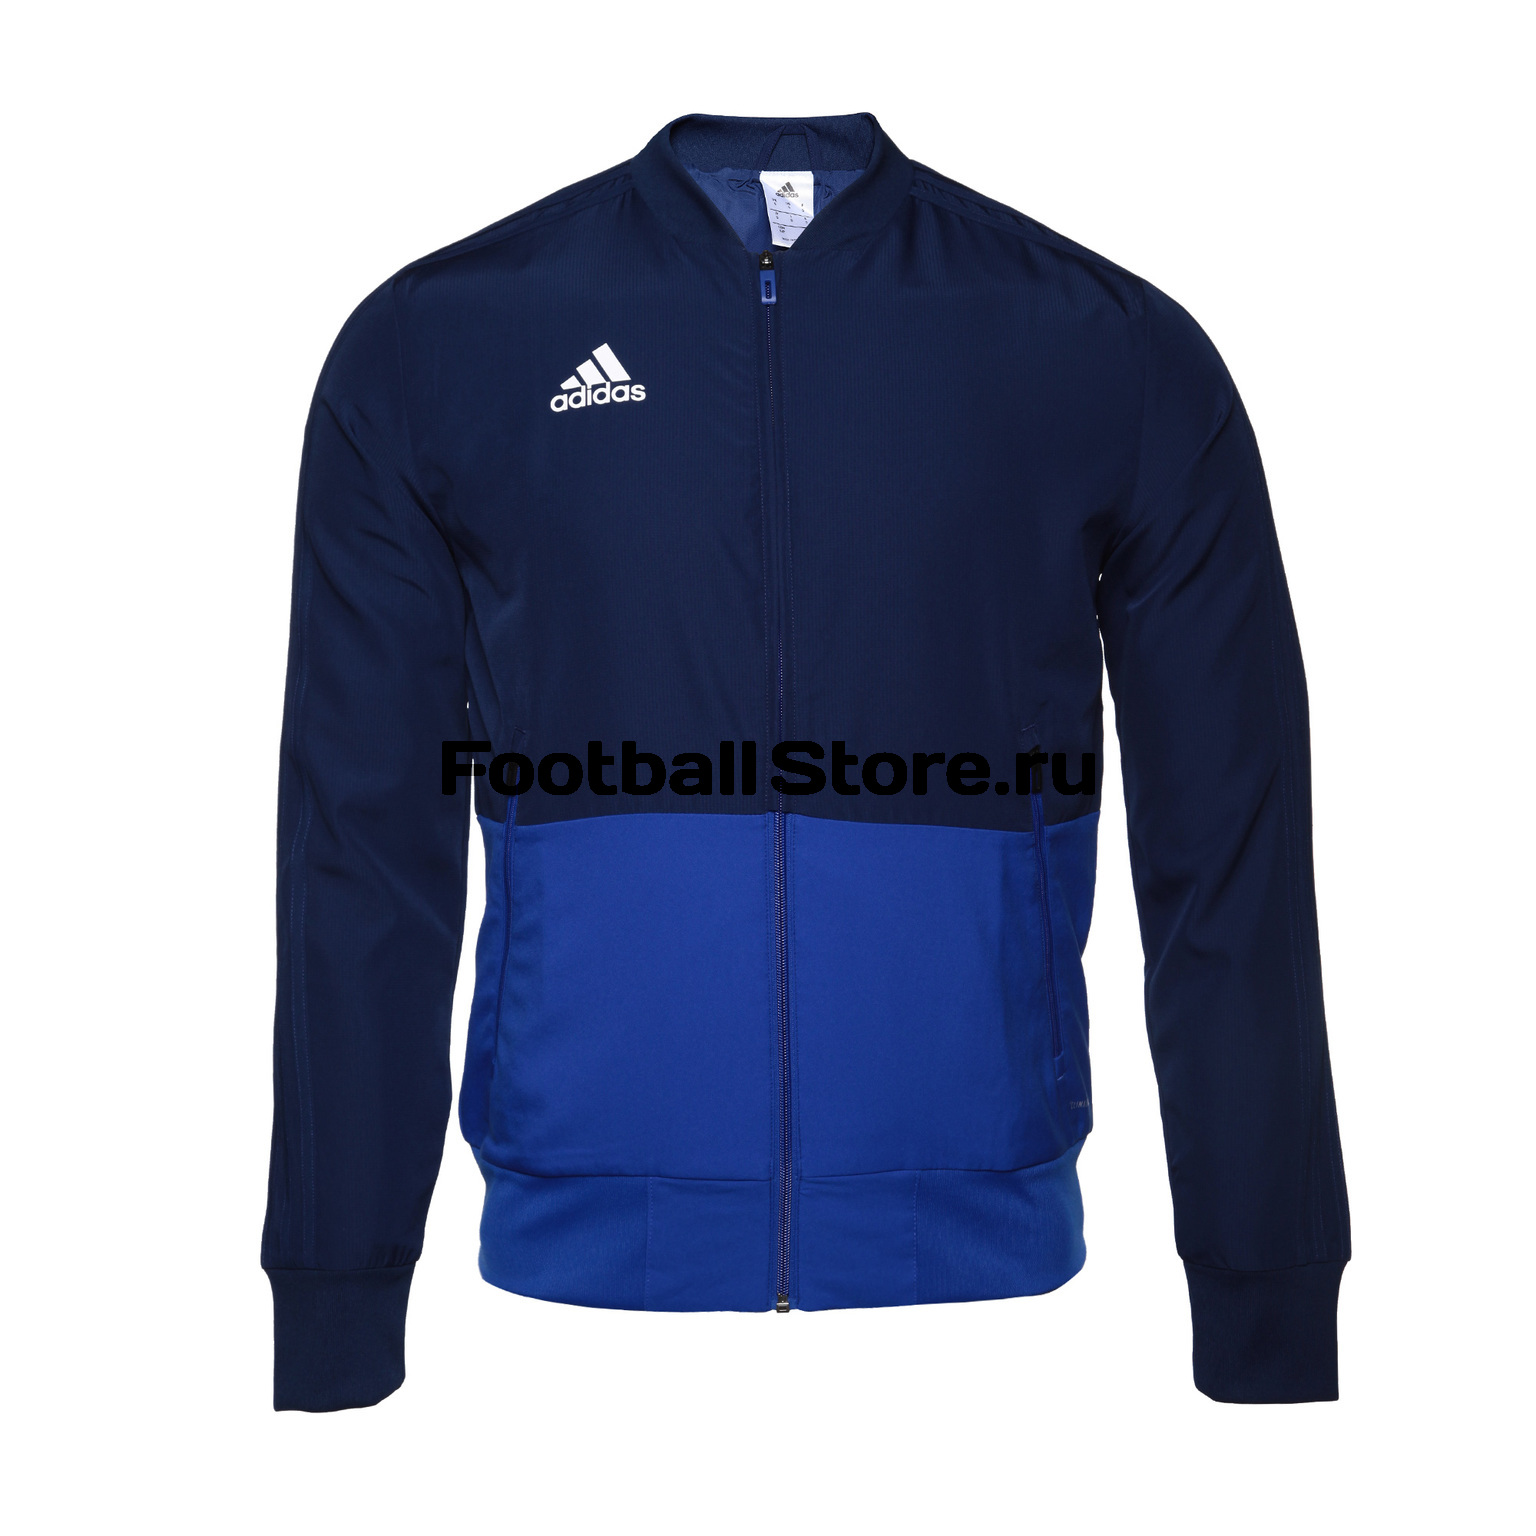 Олимпийка Adidas Con18 Pre Jkt CV8248 олимпийка мужская adidas tan club h jkt цвет черный dw9360 размер xs 40 42